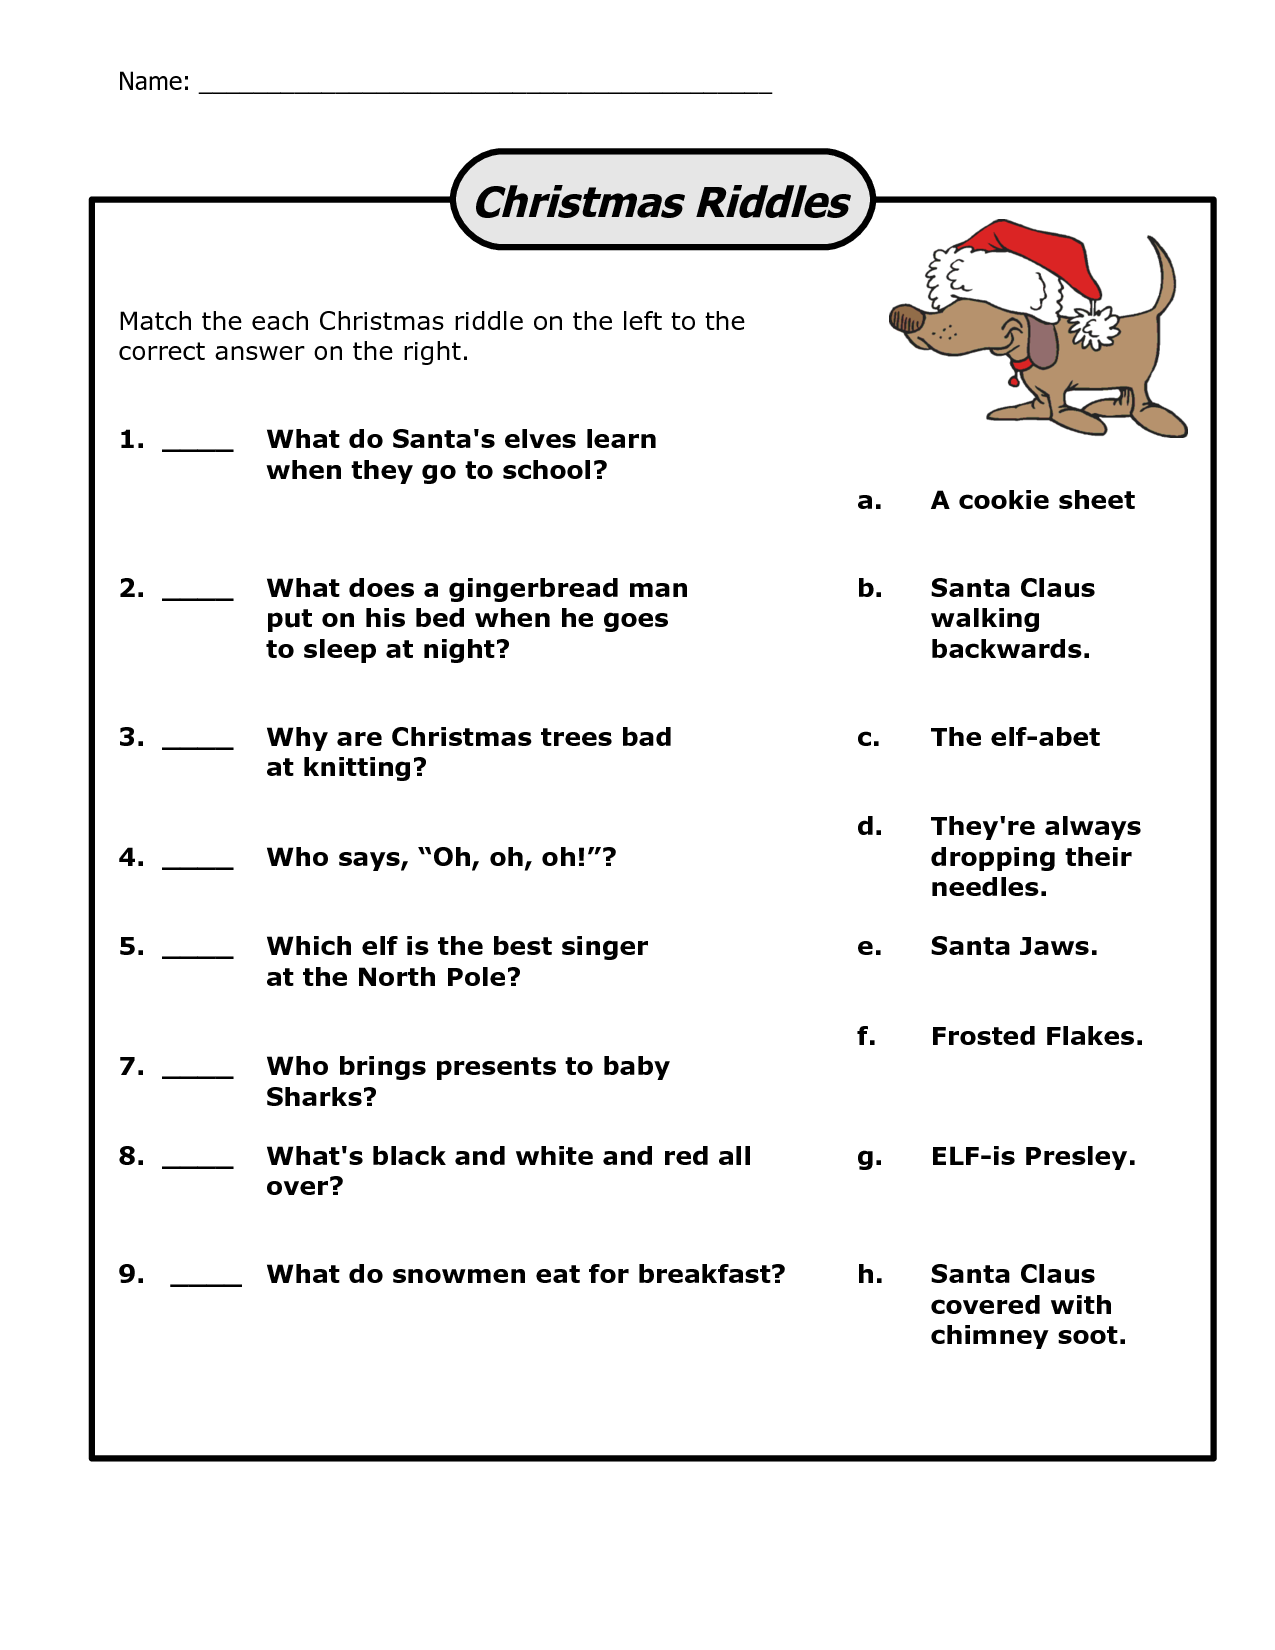 Funny Christmas Riddles Christmas Riddles Christmas Riddles For Kids Christmas Jokes